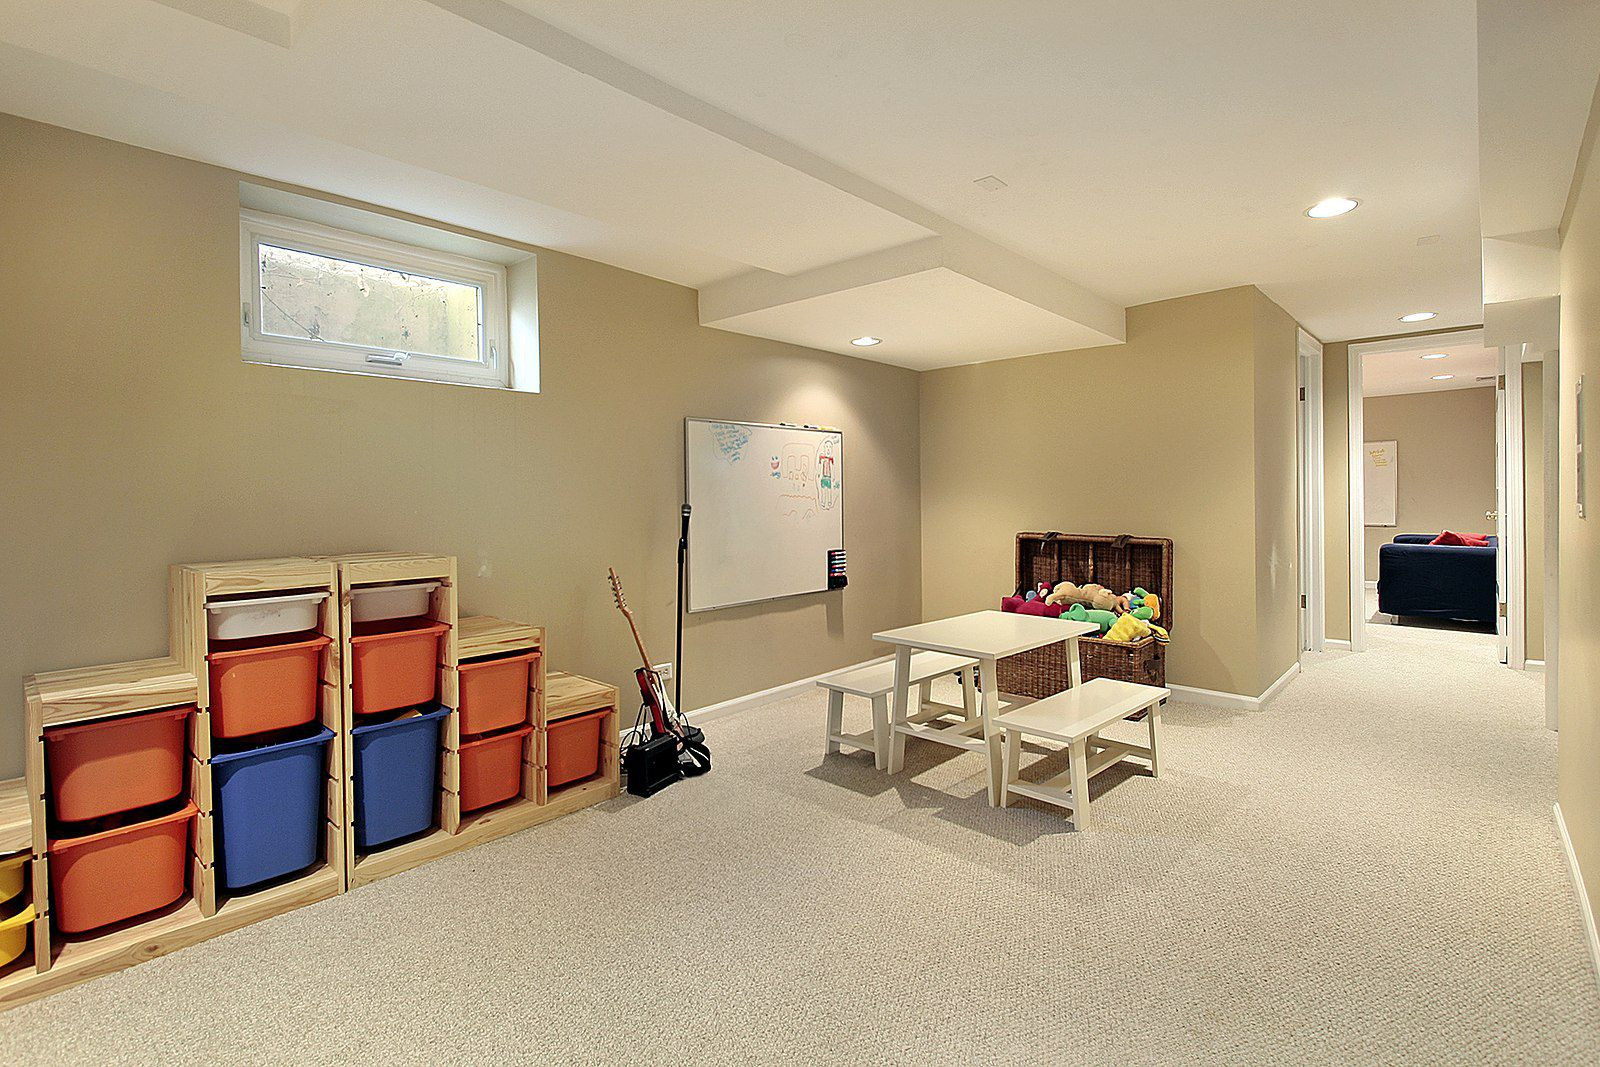 Best ideas about Remodel Basement Ideas . Save or Pin Basement Finishing Ideas with Stunning Interior Designs Now.